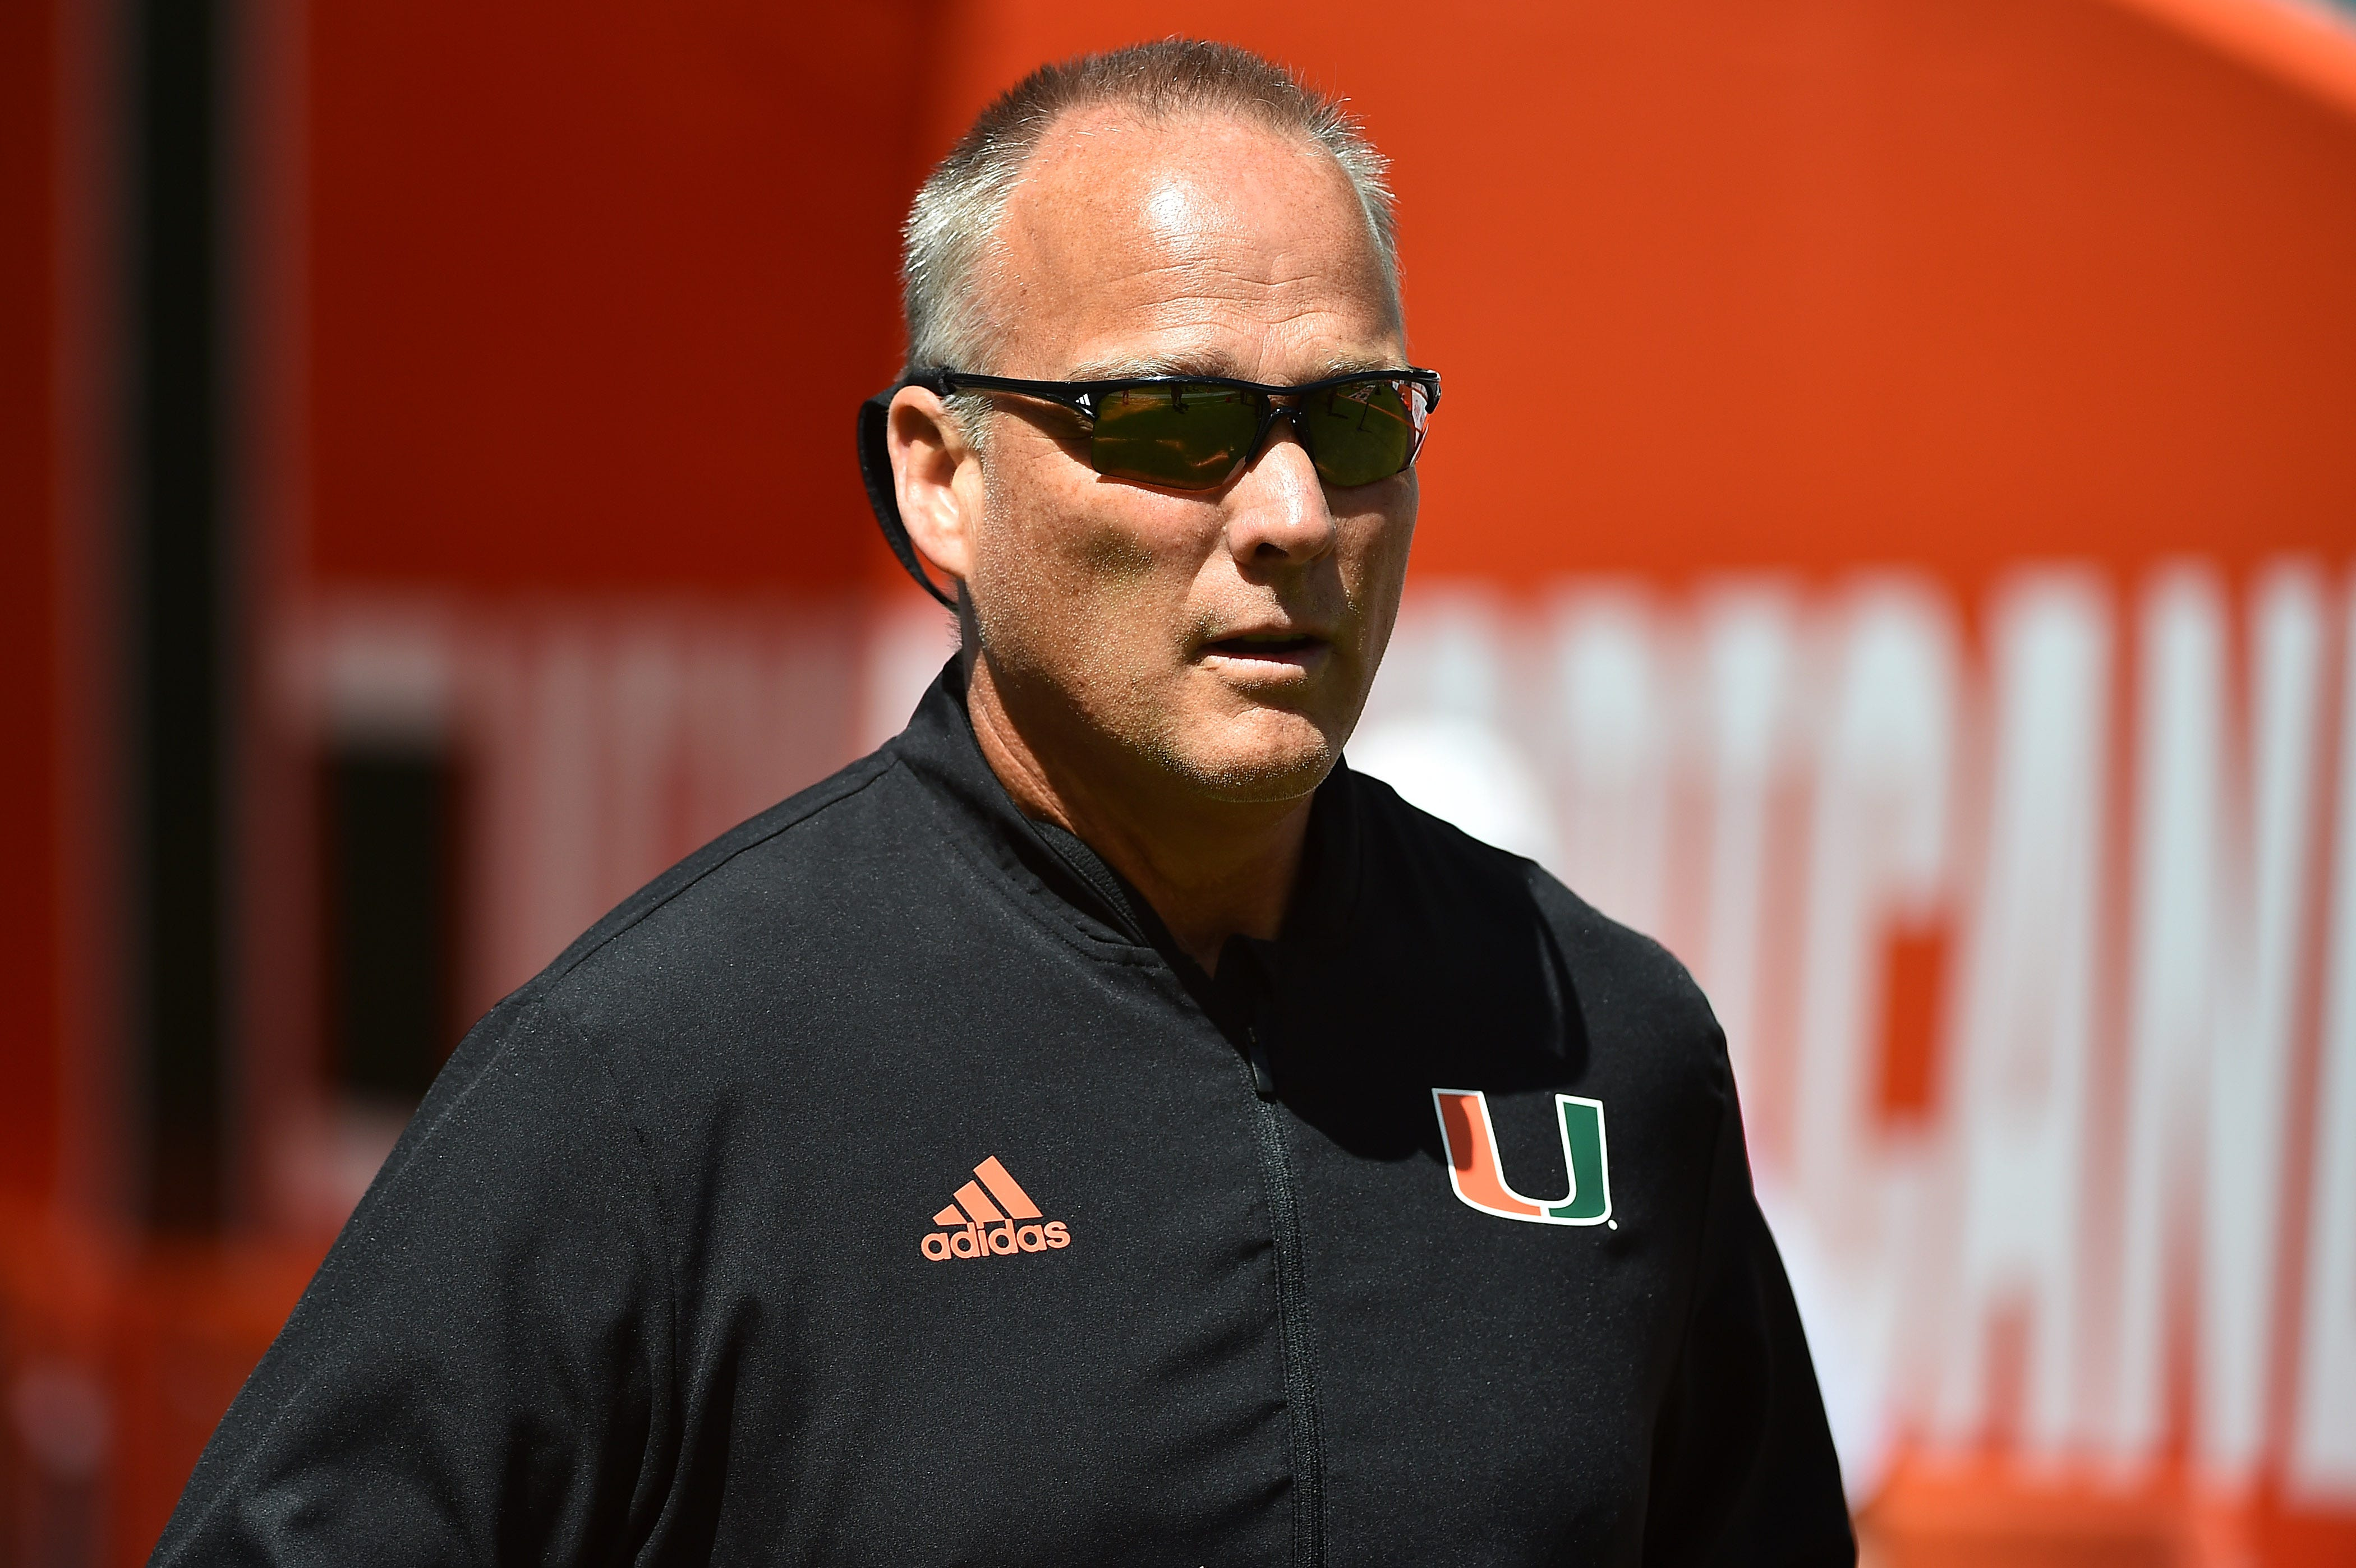 Longtime college football coach Mark Richt diagnosed with Parkinson s disease